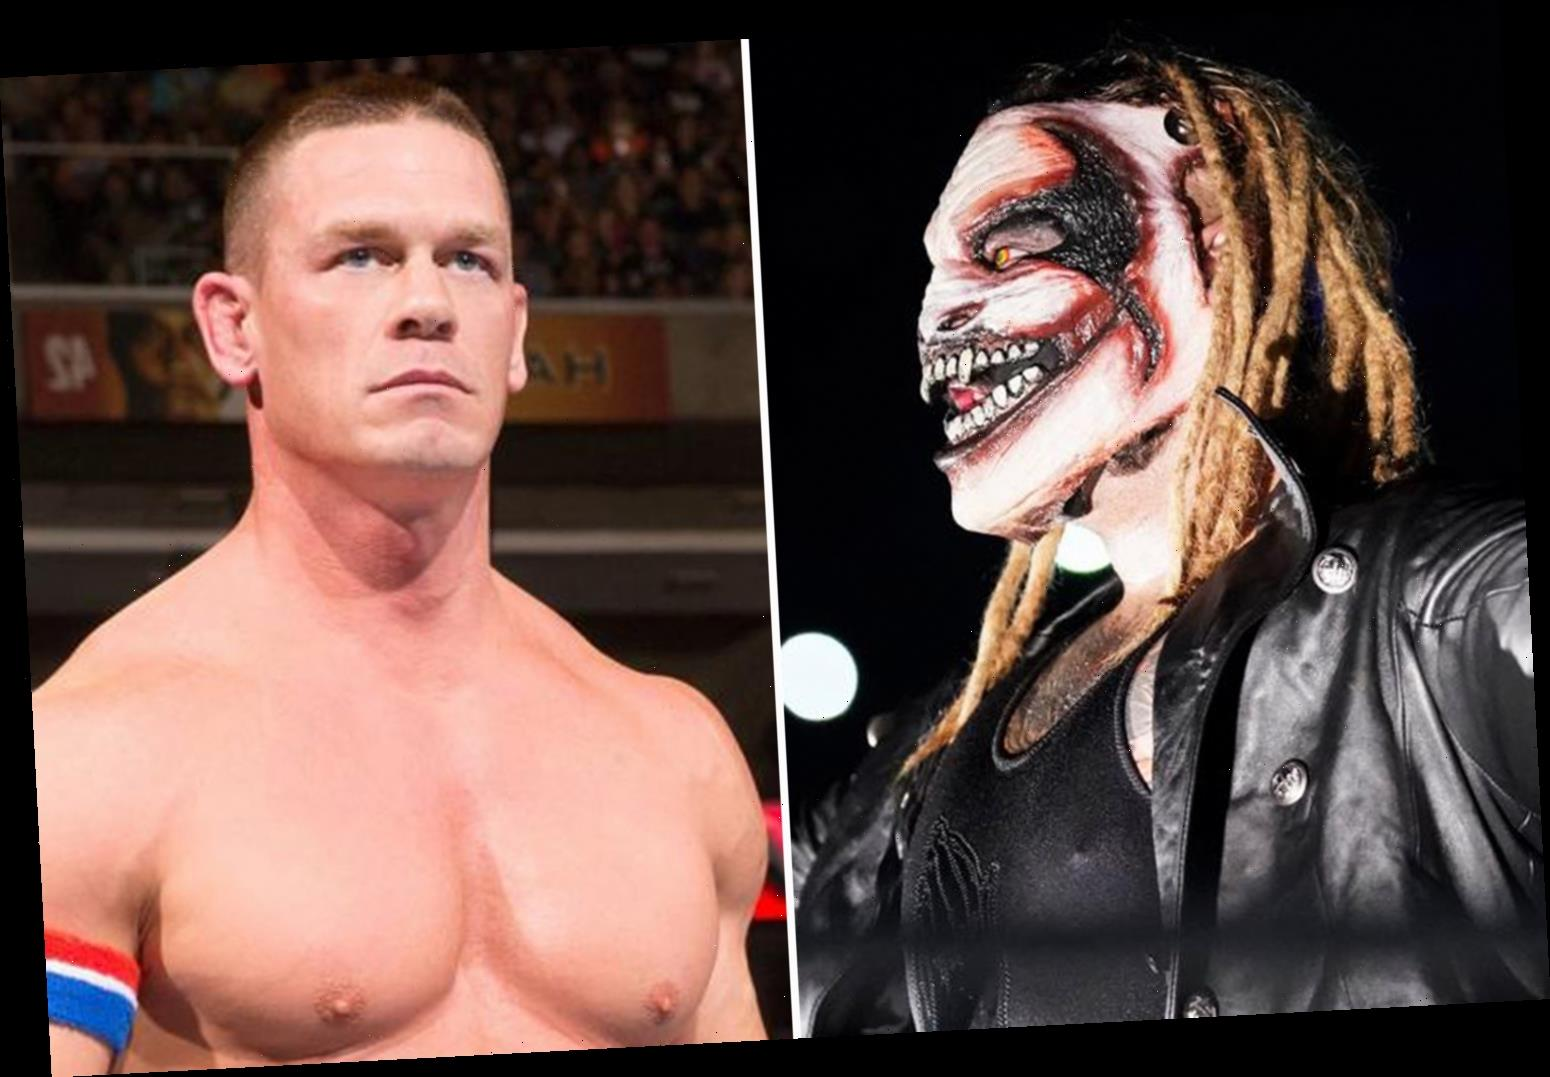 John Cena hails Bray Wyatt and one other heel for carrying WWE through the no-fan era caused by coronavirus pandemic